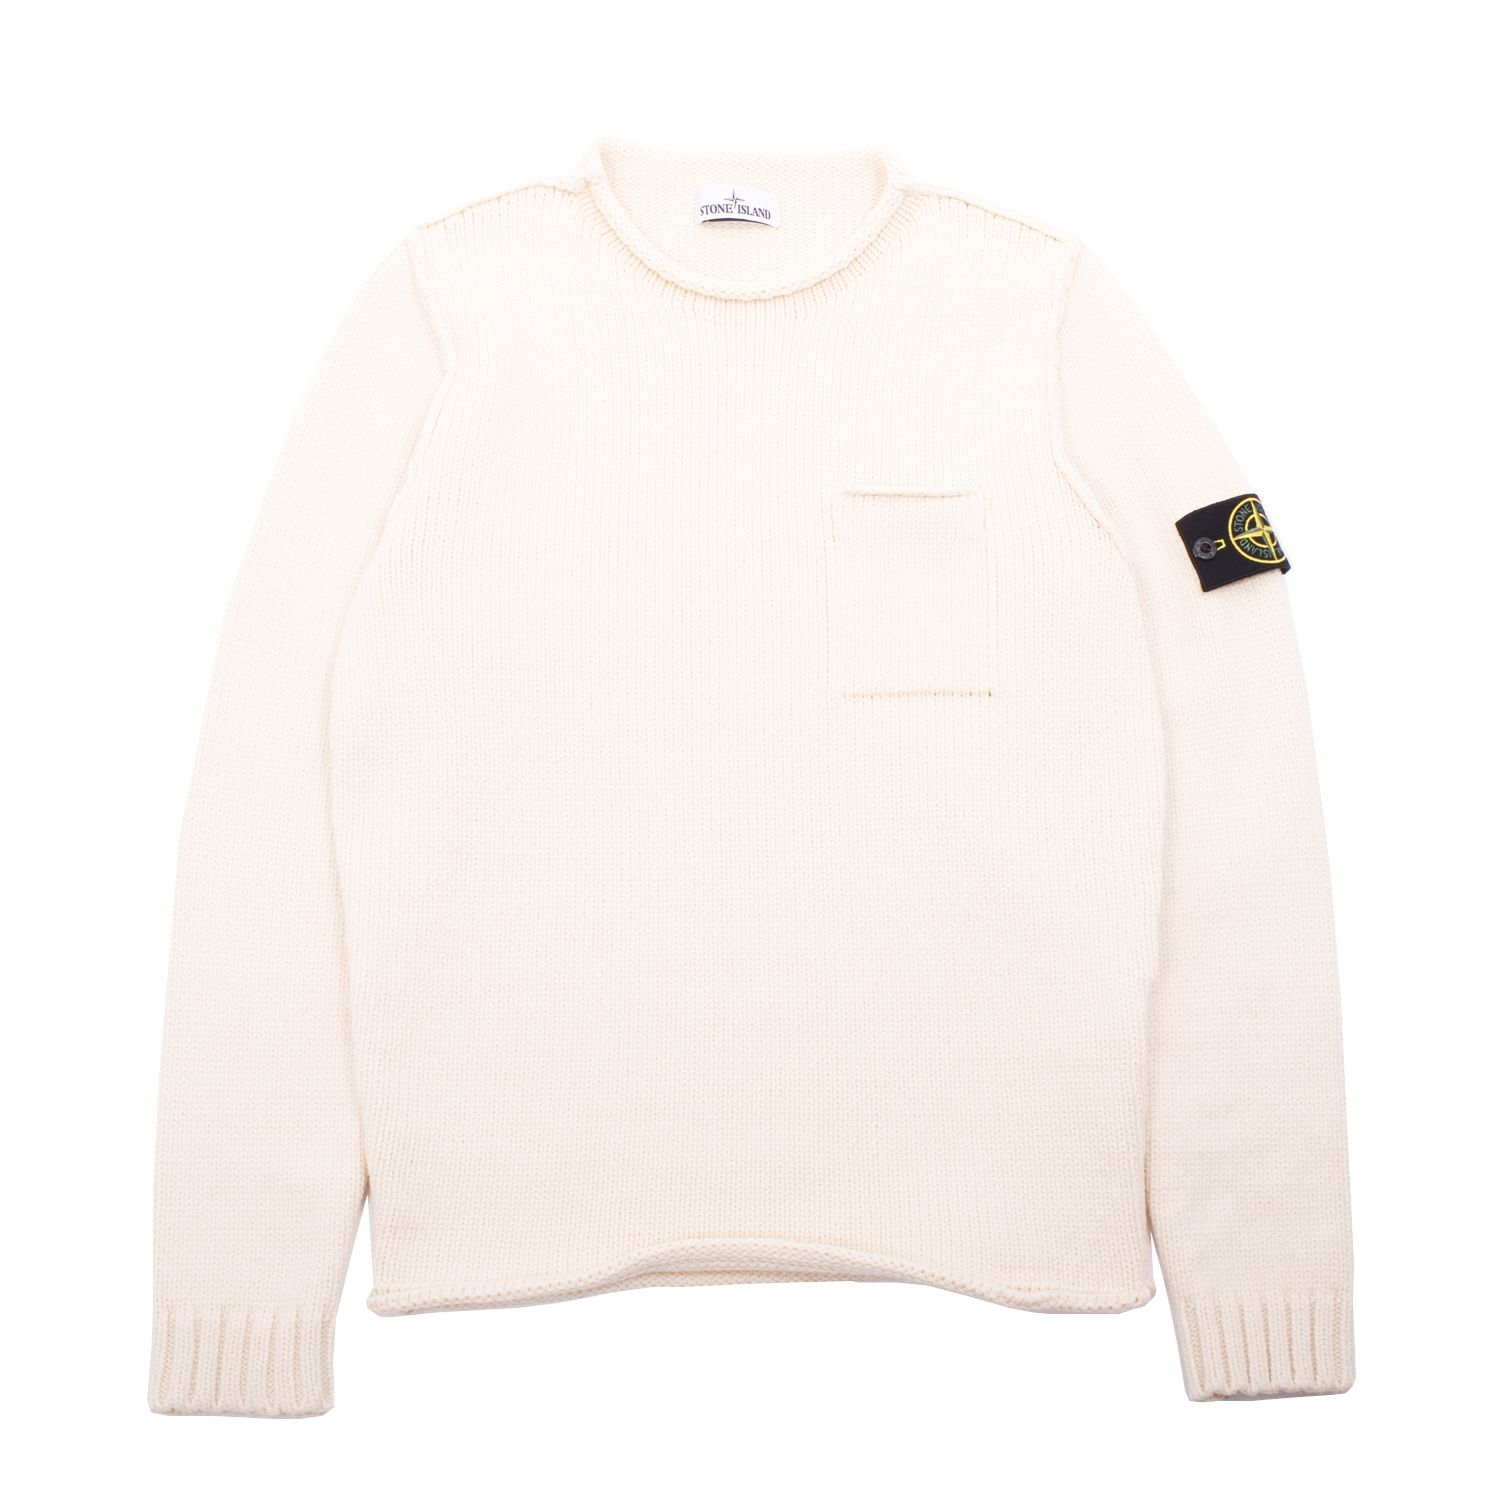 Classic Stone Island Roll Collar Knit Sweater Features A Premium